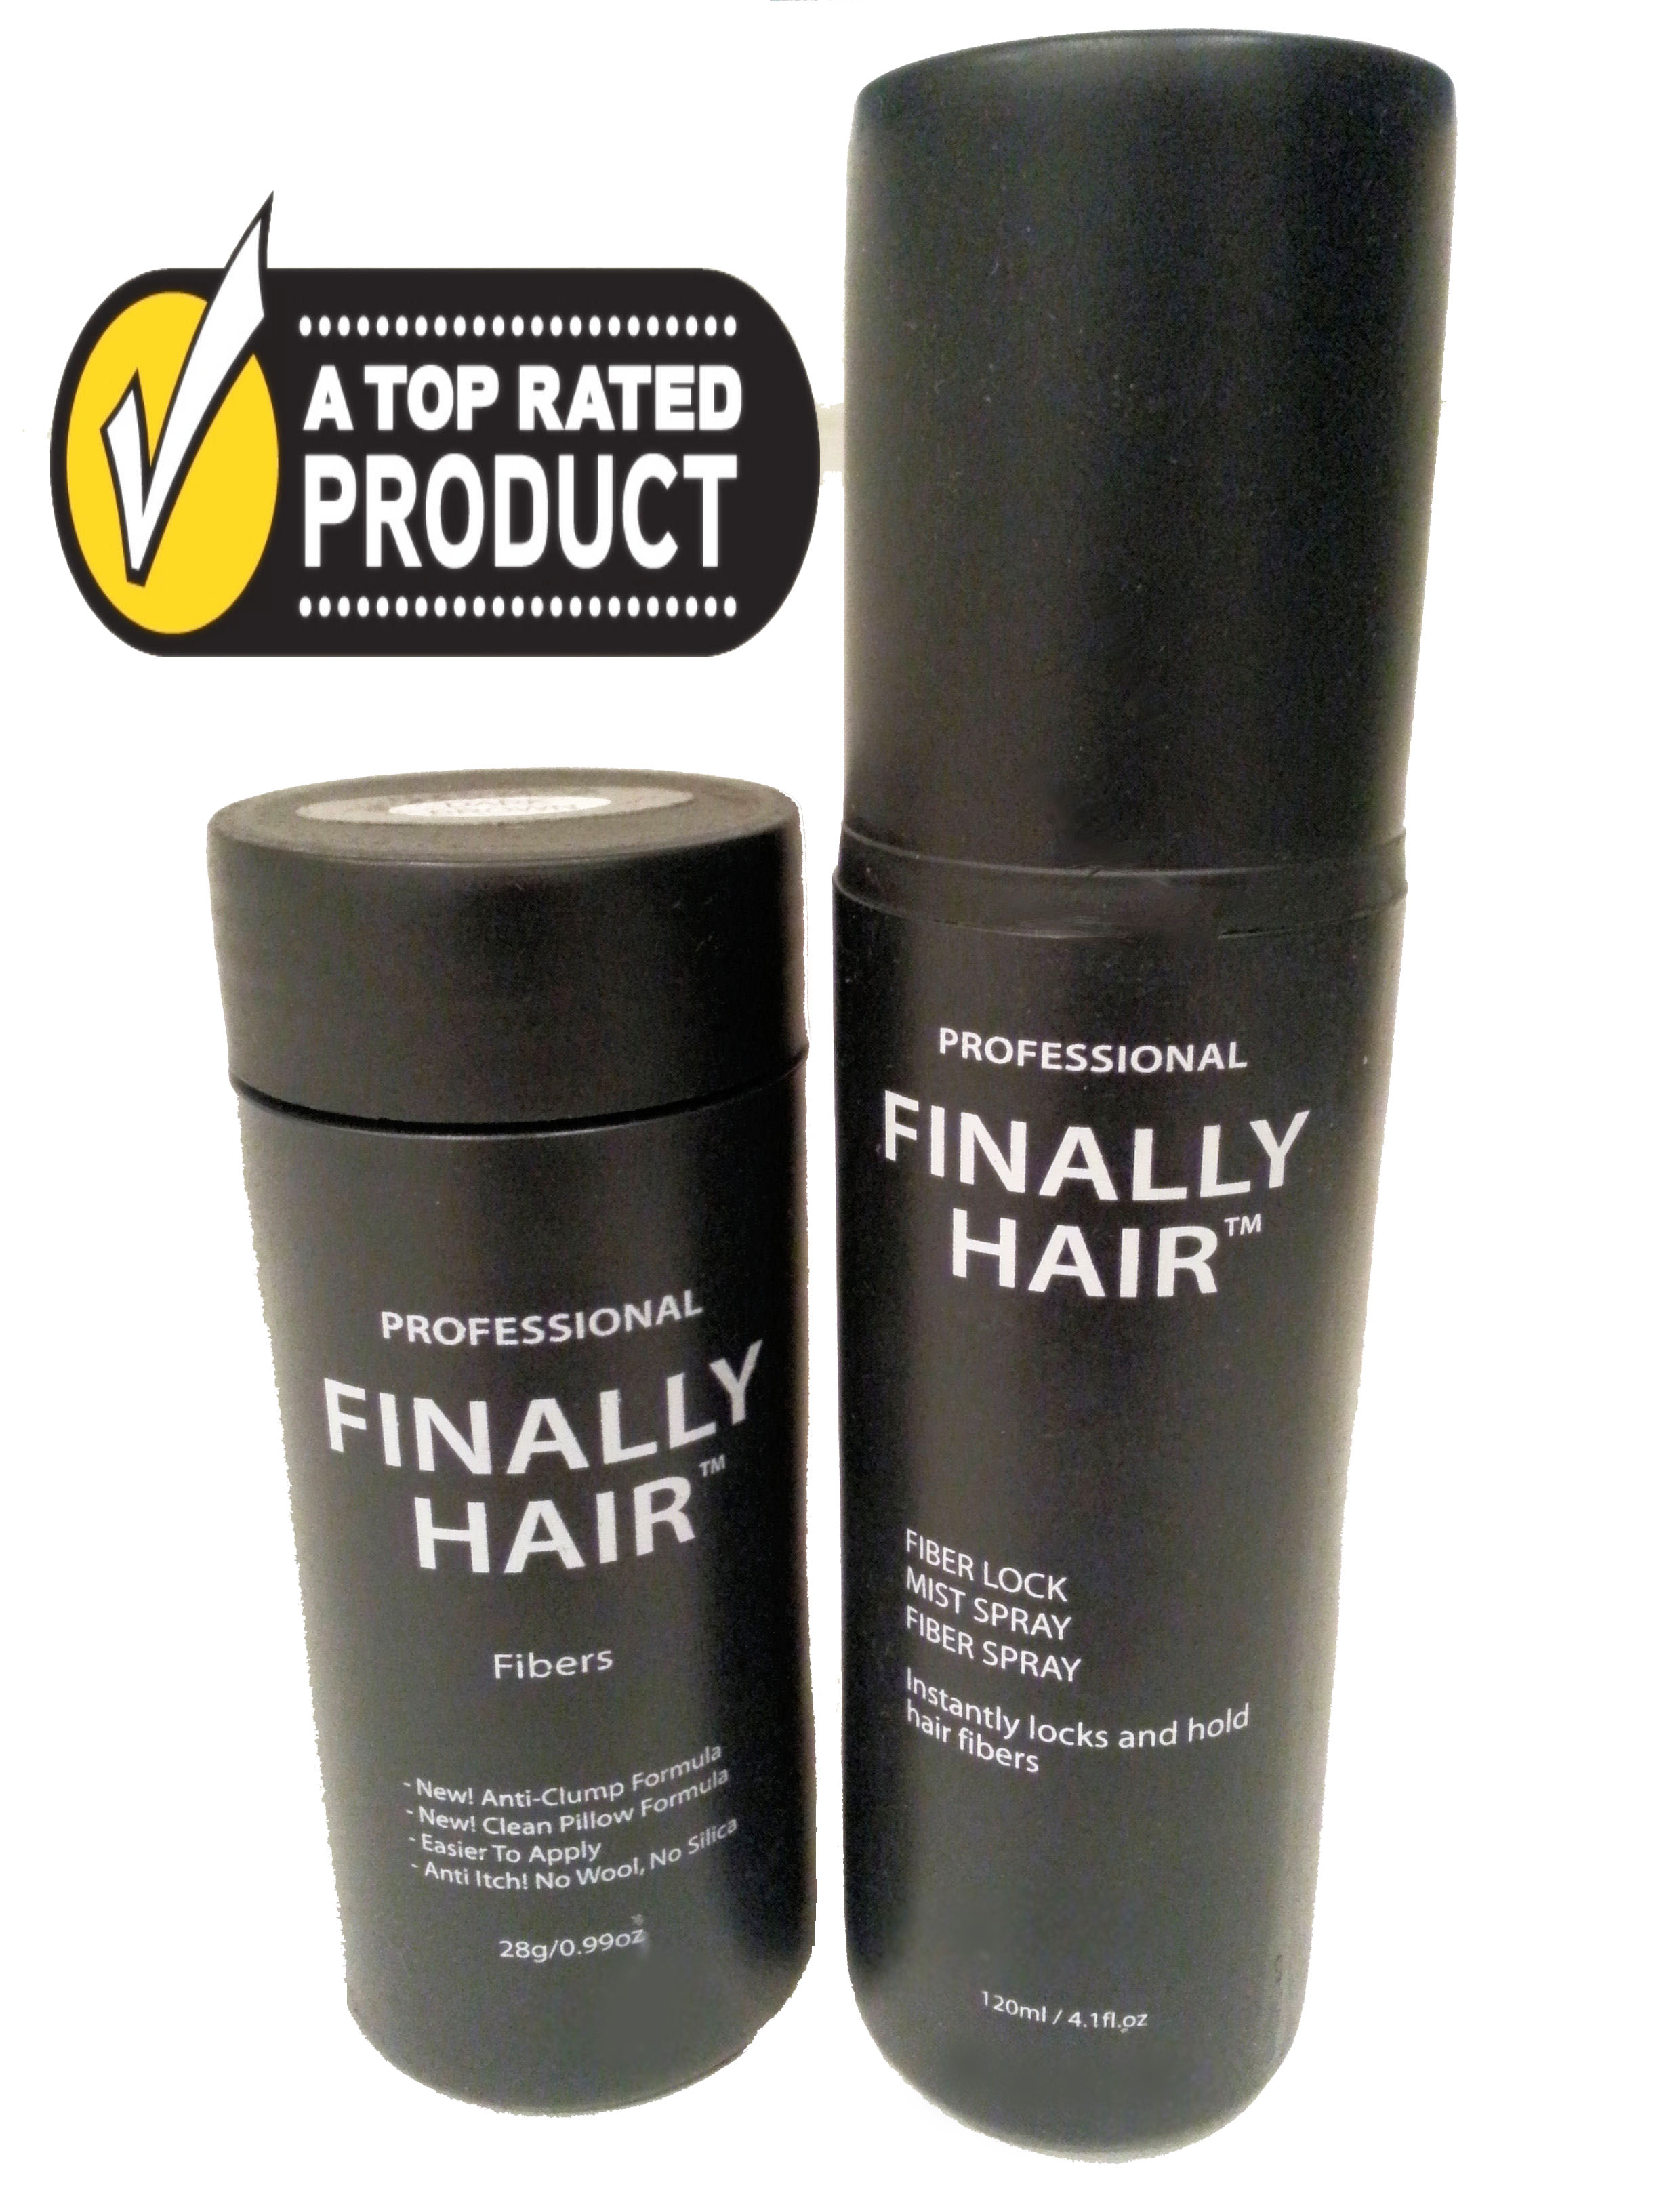 Hair Loss Concealer Kit - 28g Hair Fibers & Fiber Lock Spray